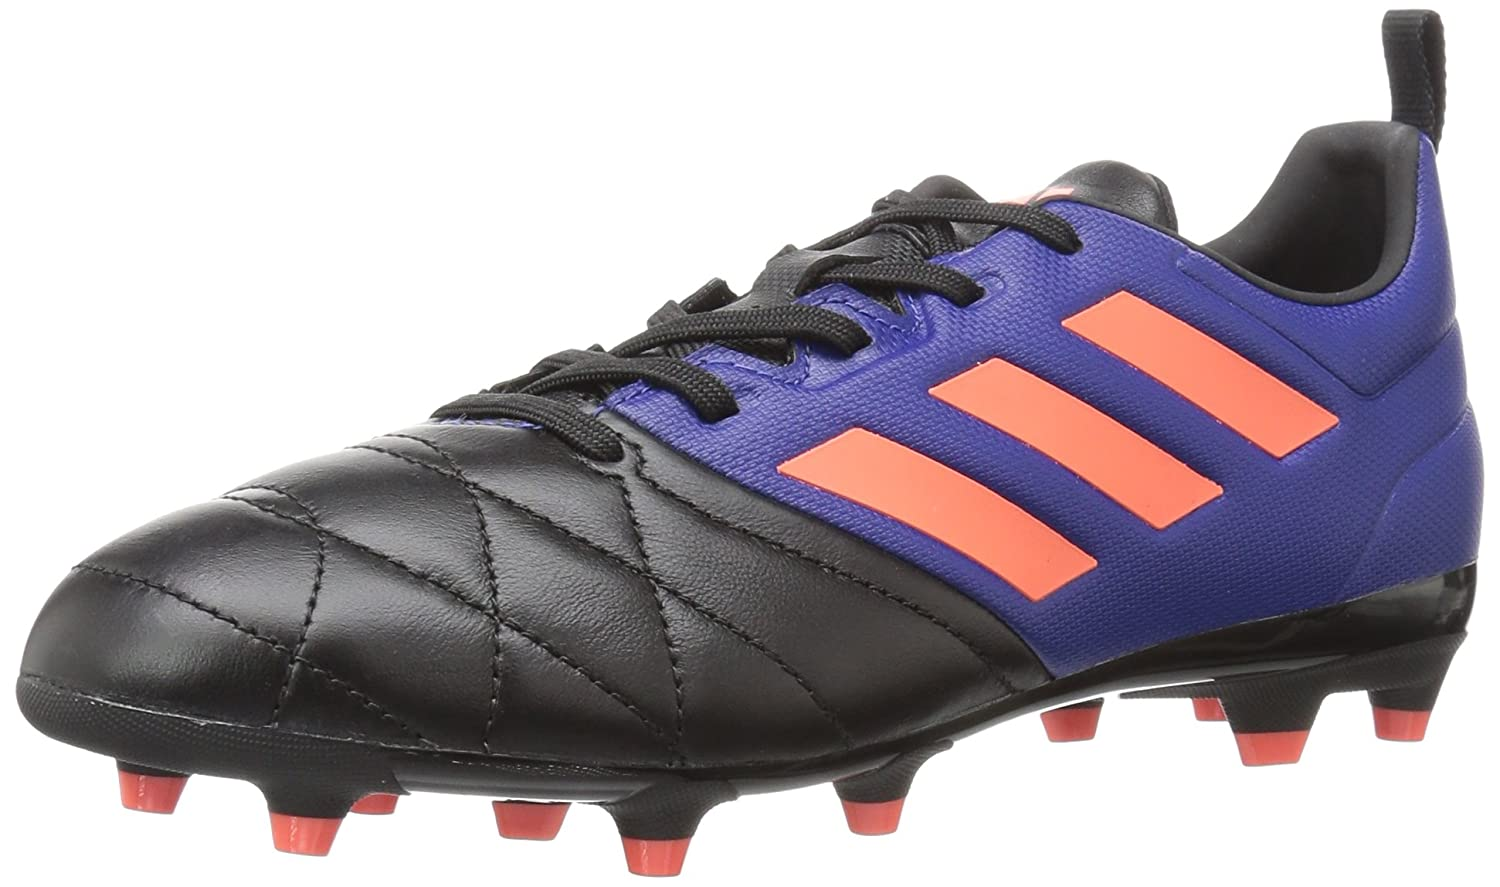 Adidas Women's ACE 17.3 Firm Ground Soccer Shoes Black S77059